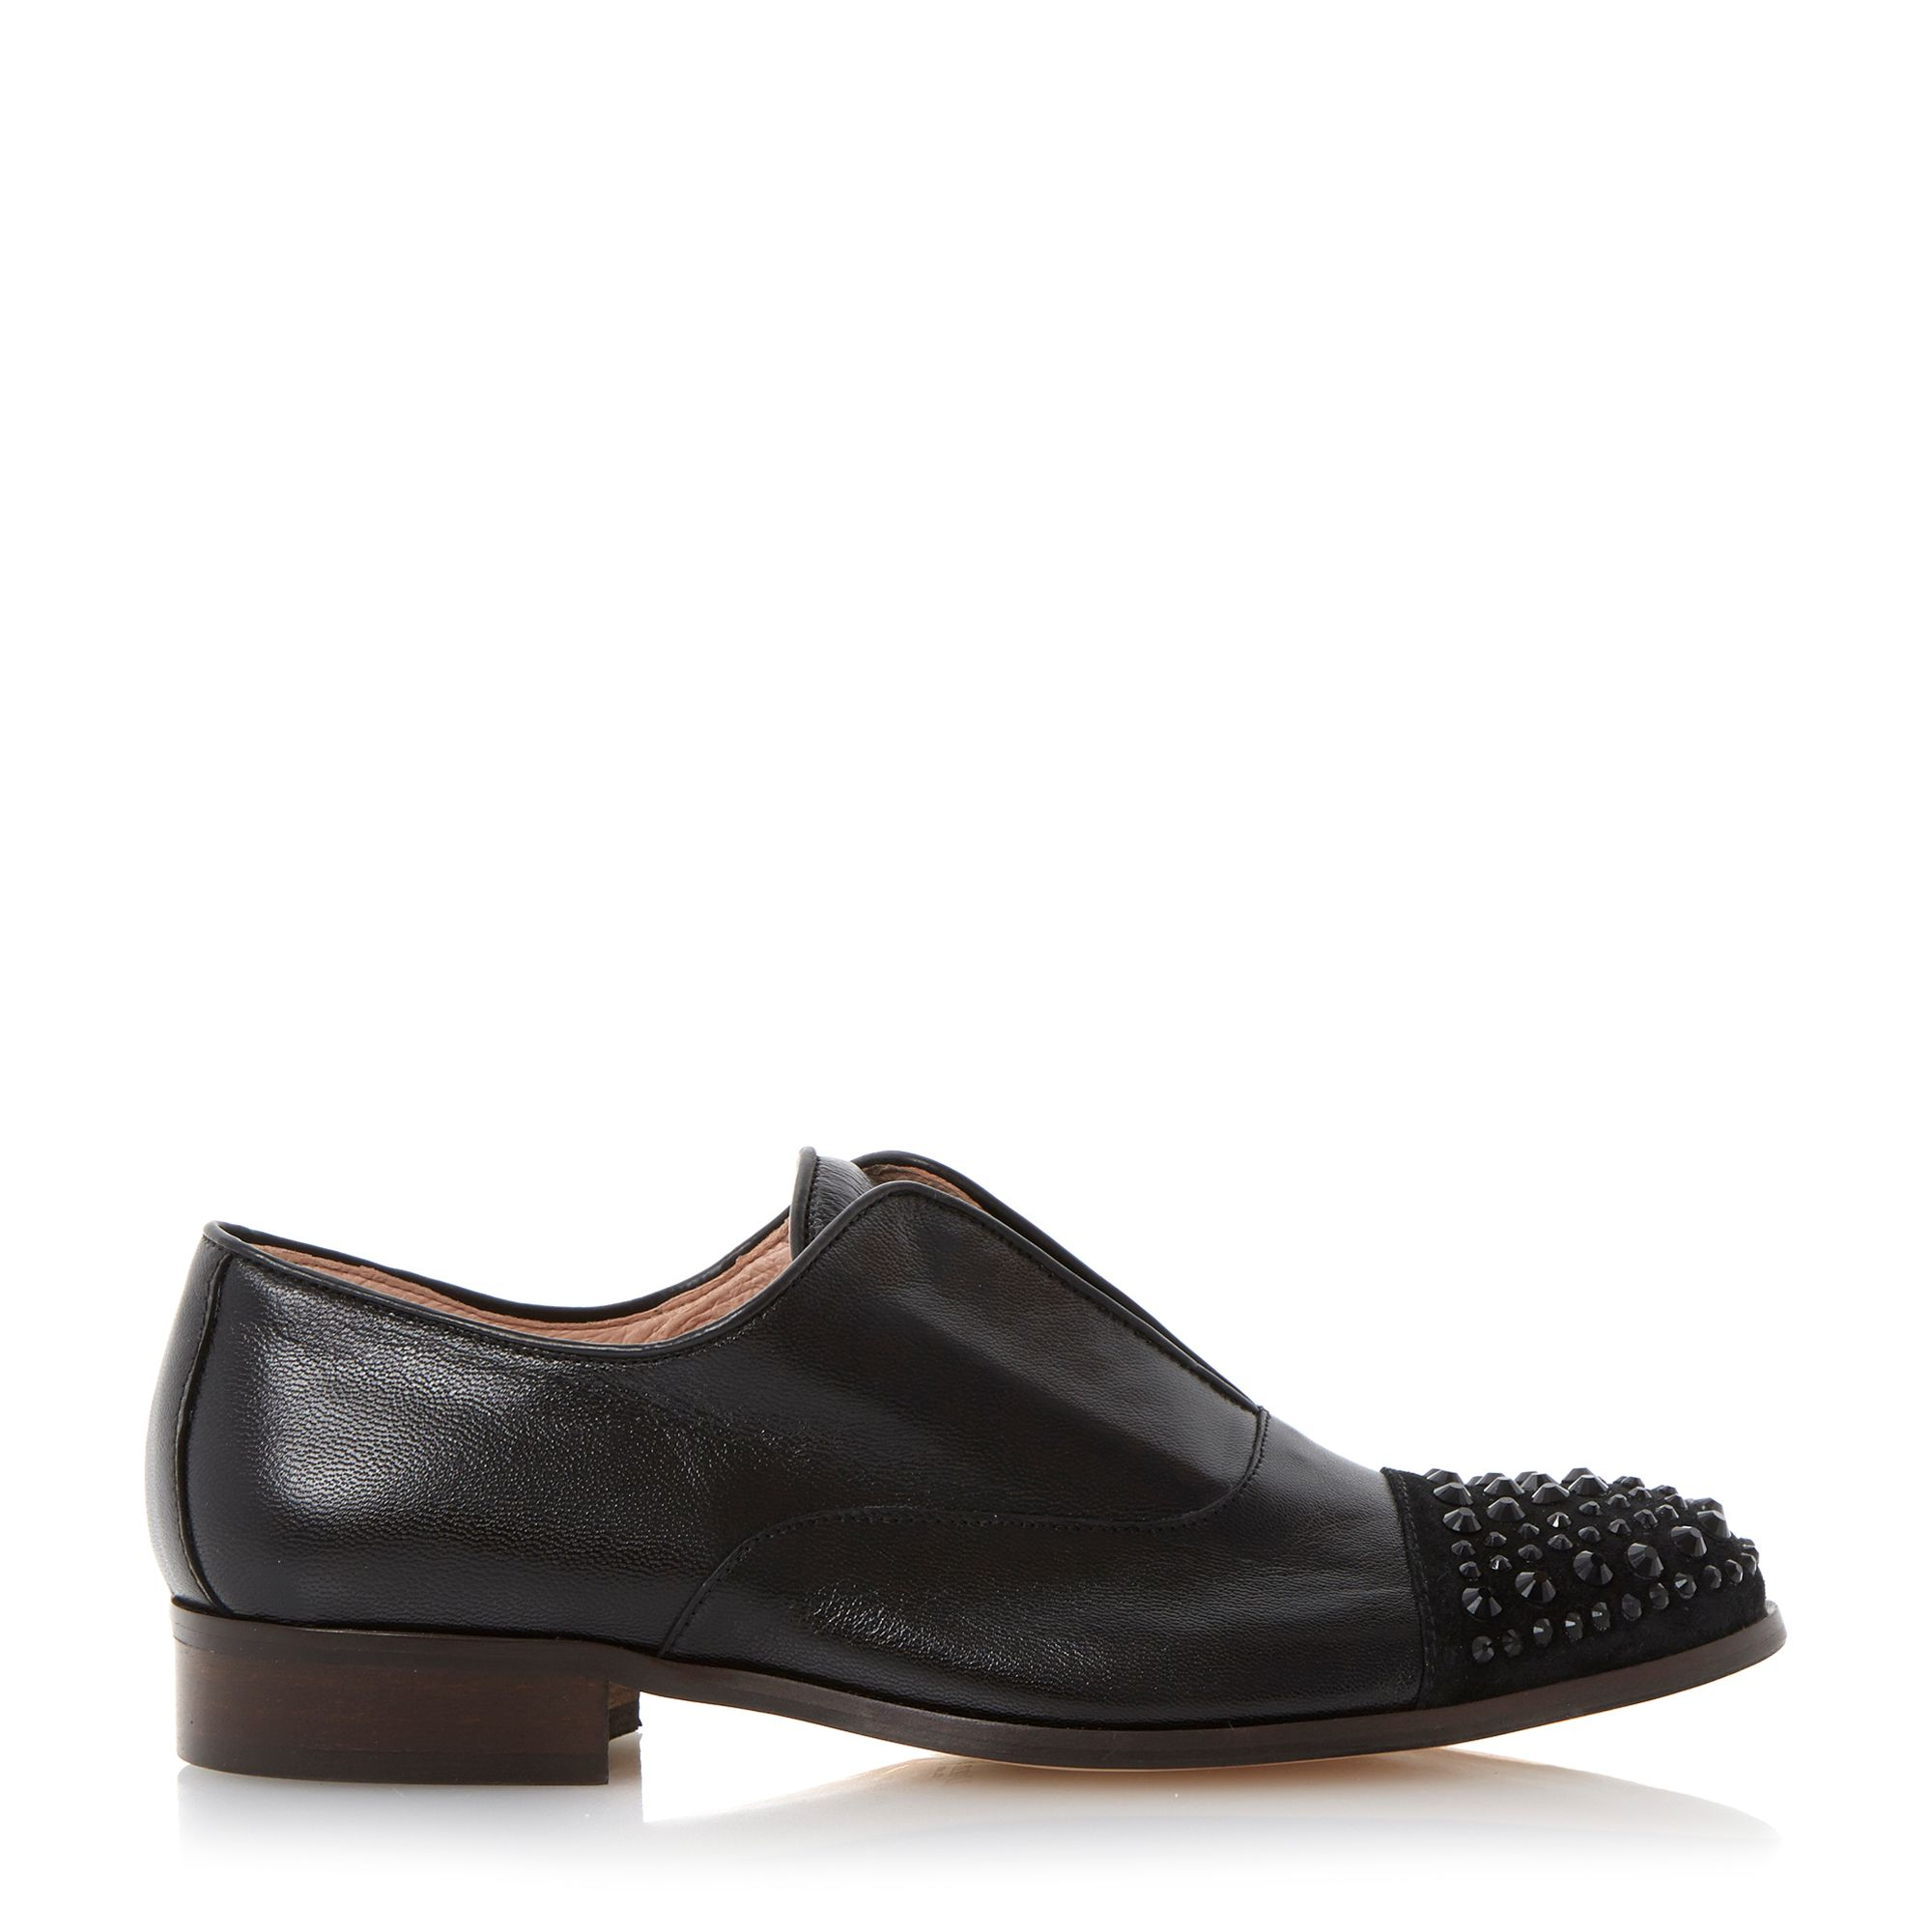 Dune Black Harri Leather Round Toe Loafer Shoes In Black ...